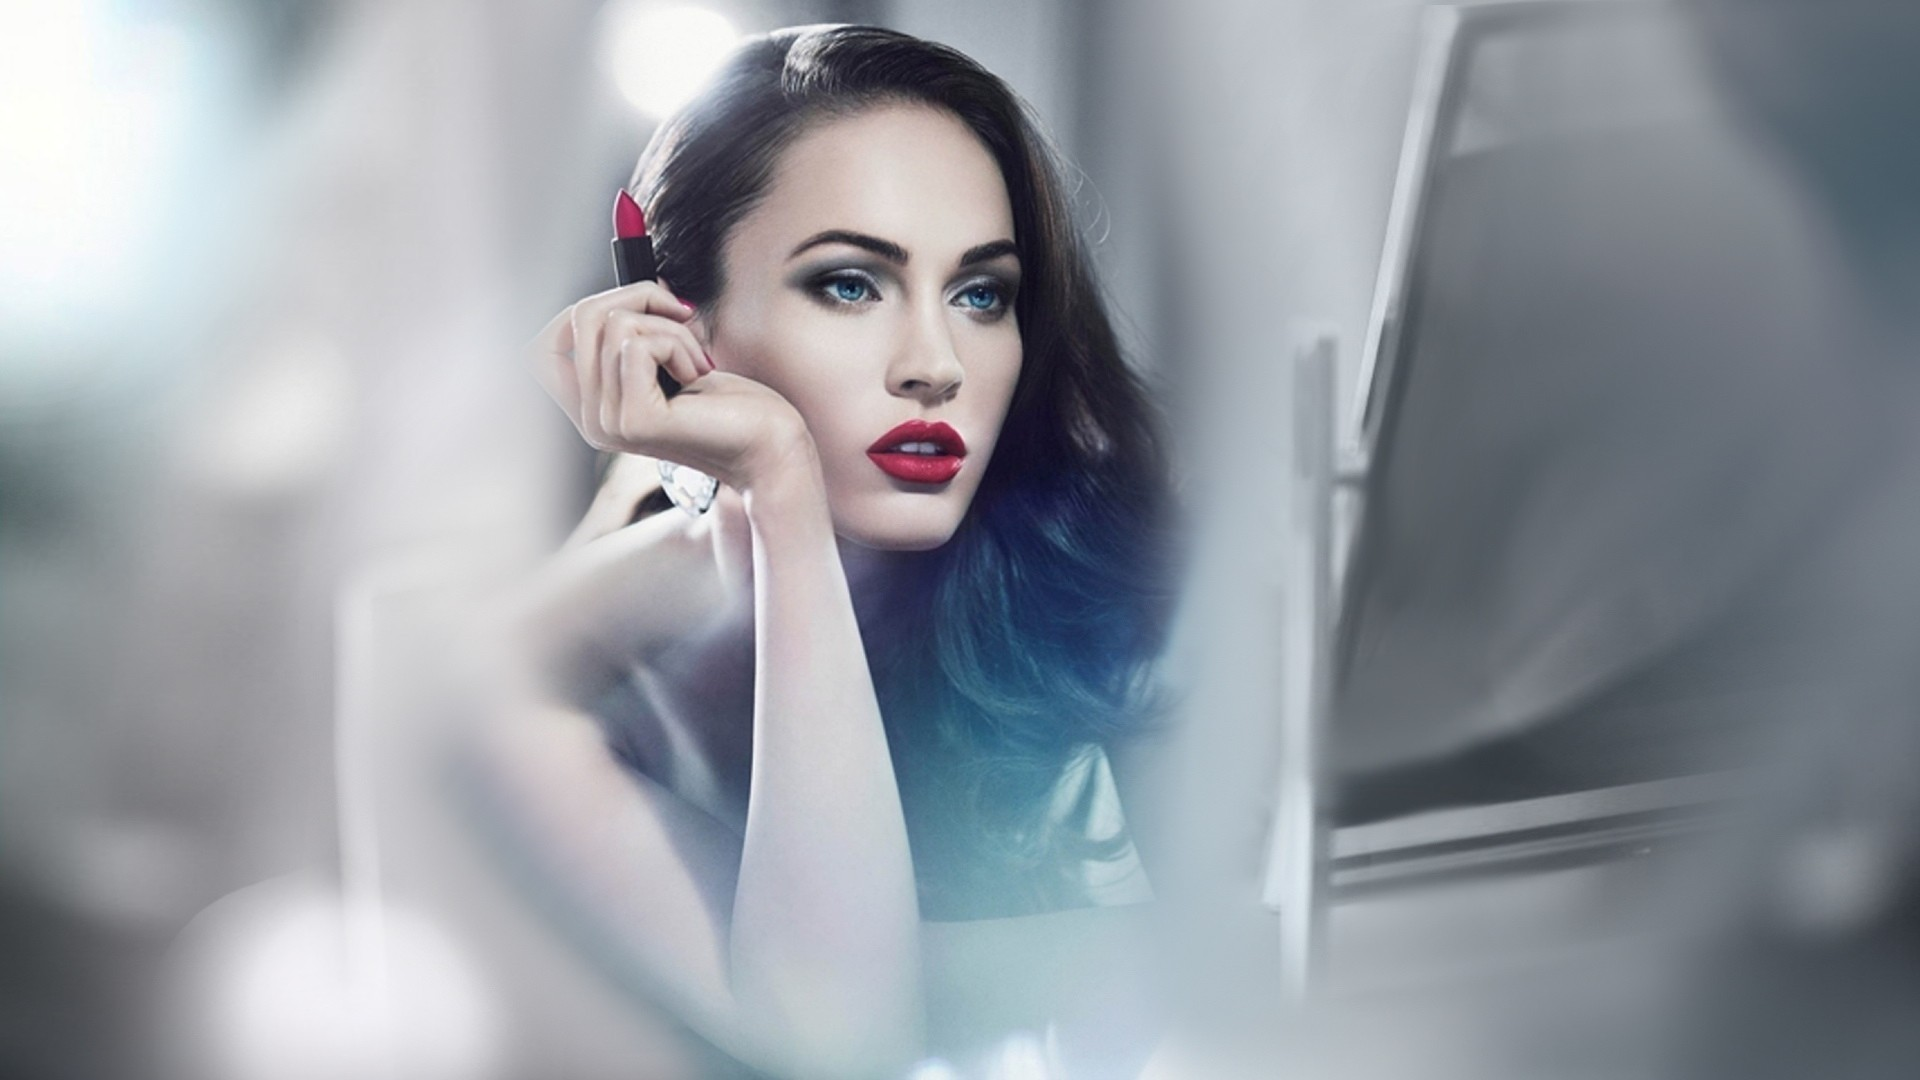 Megan Fox HD Wallpapers Download